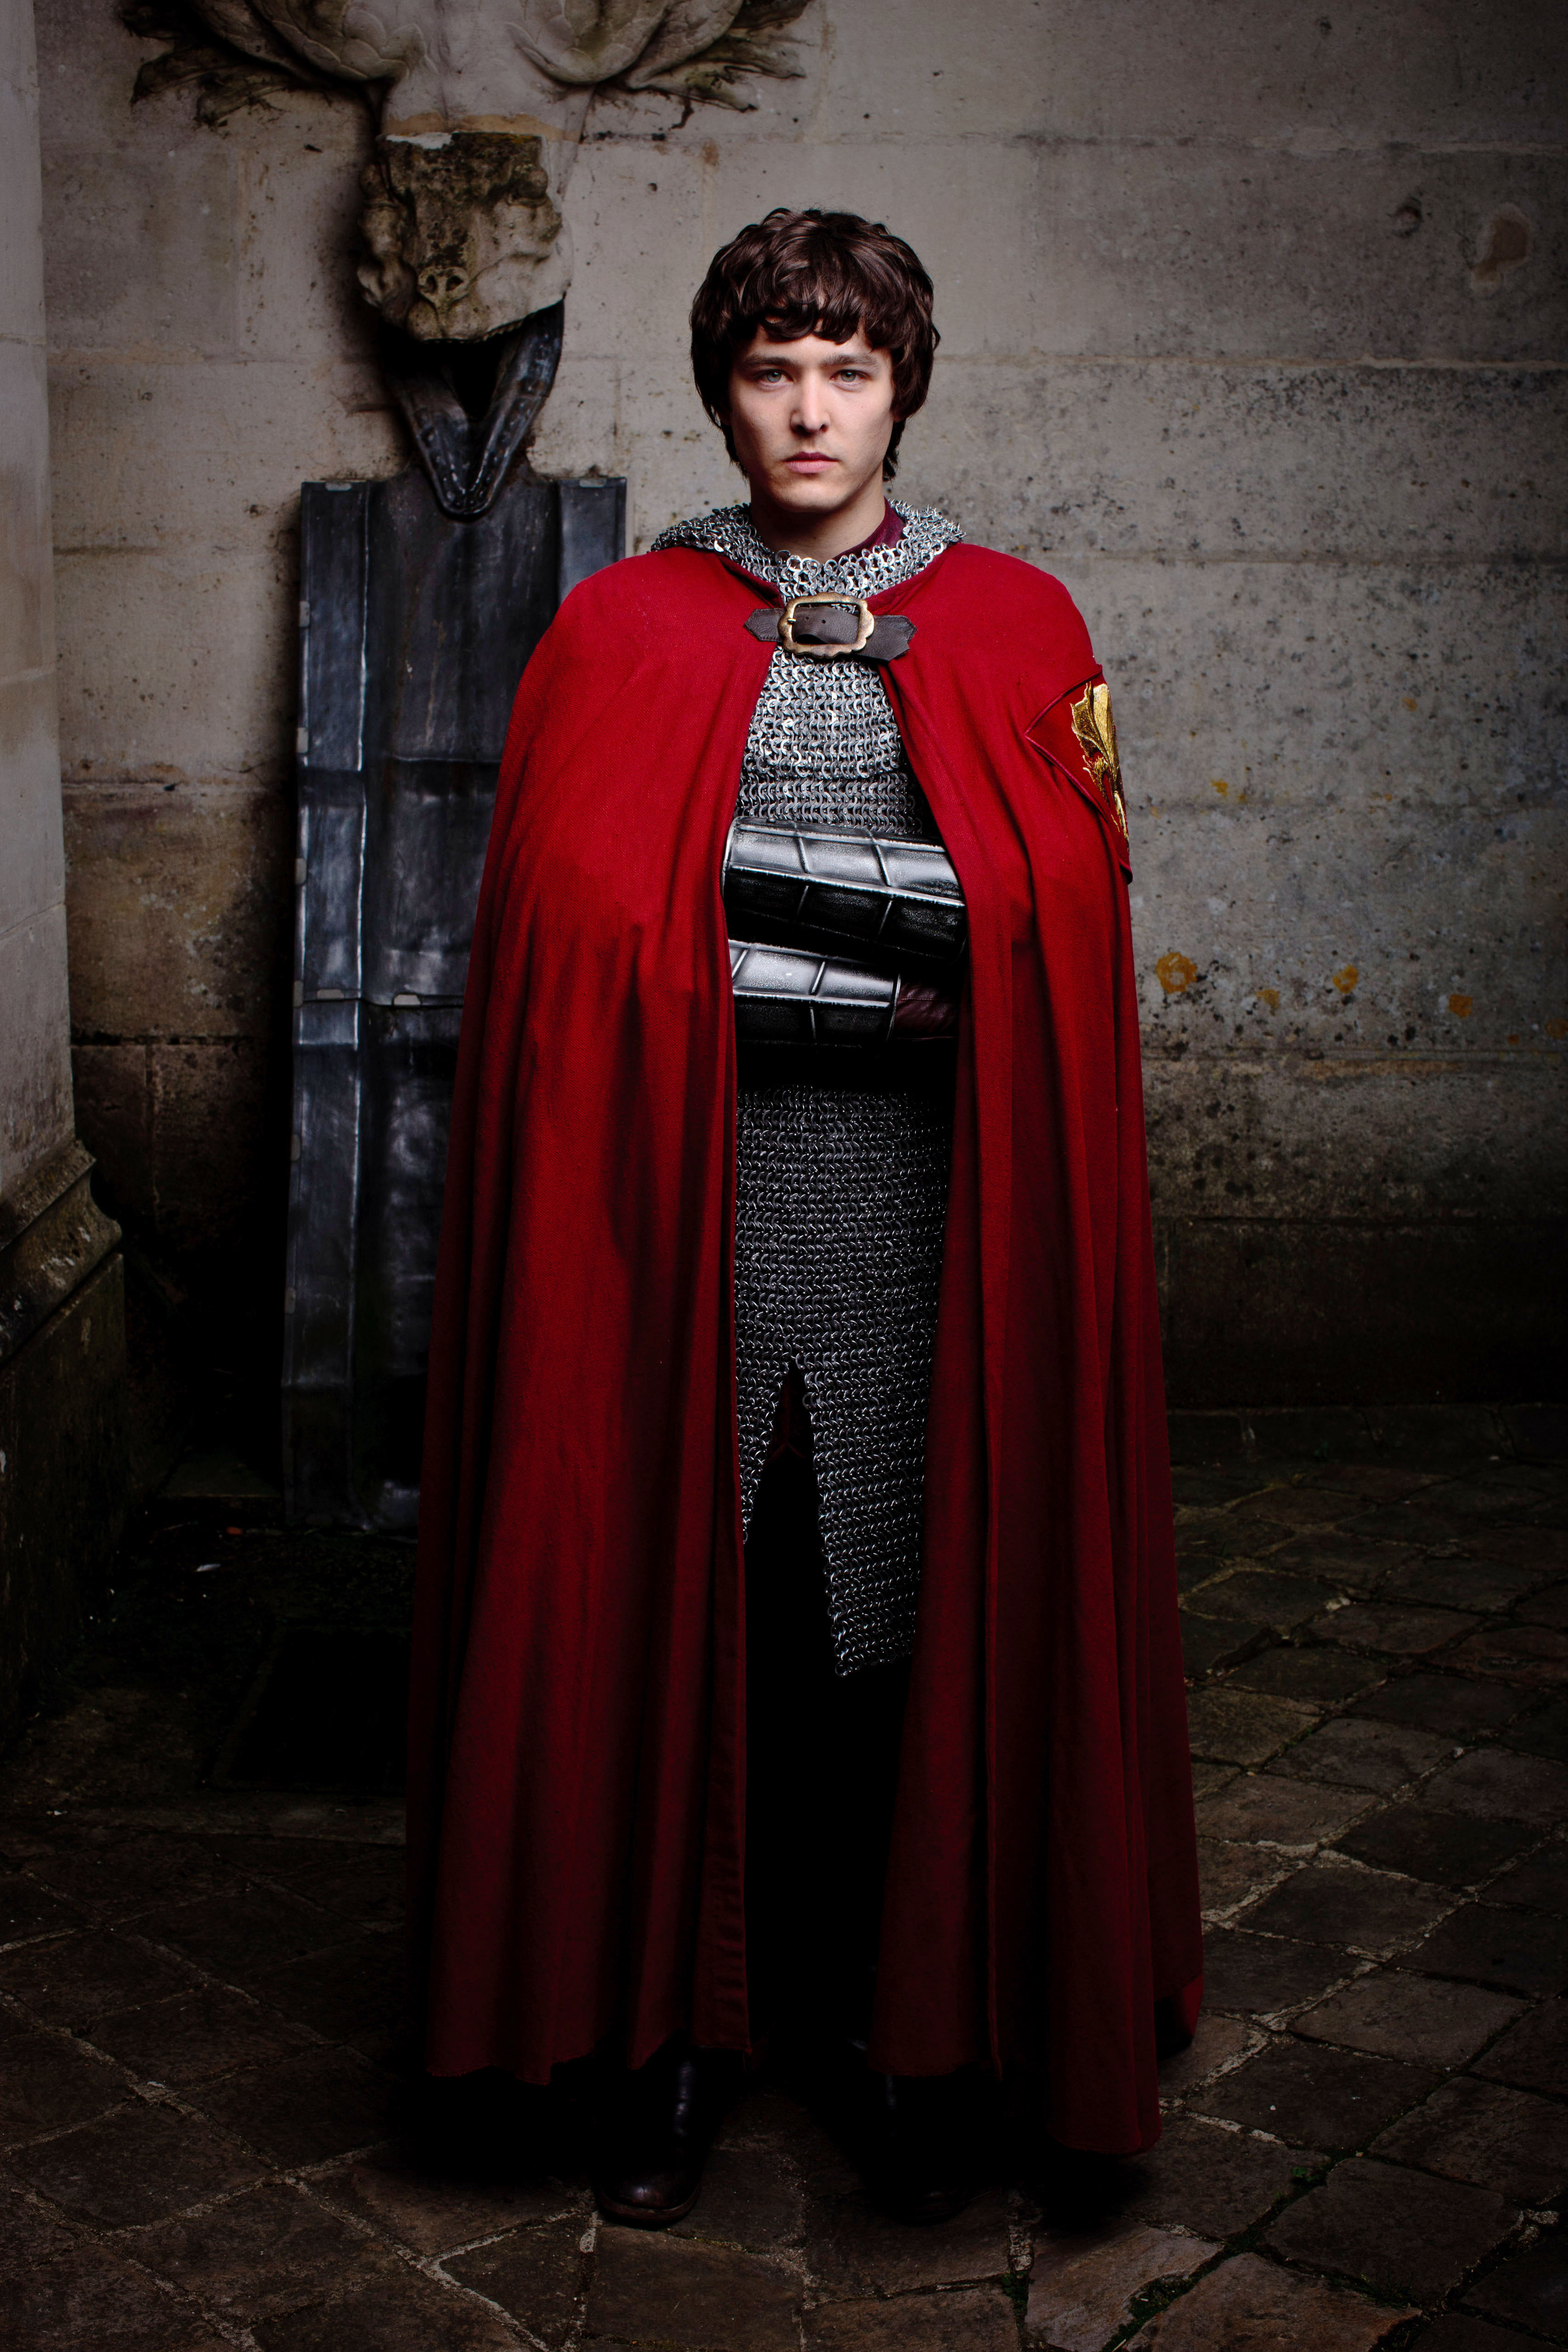 Merlin Bbc Morgana Variations from the My...